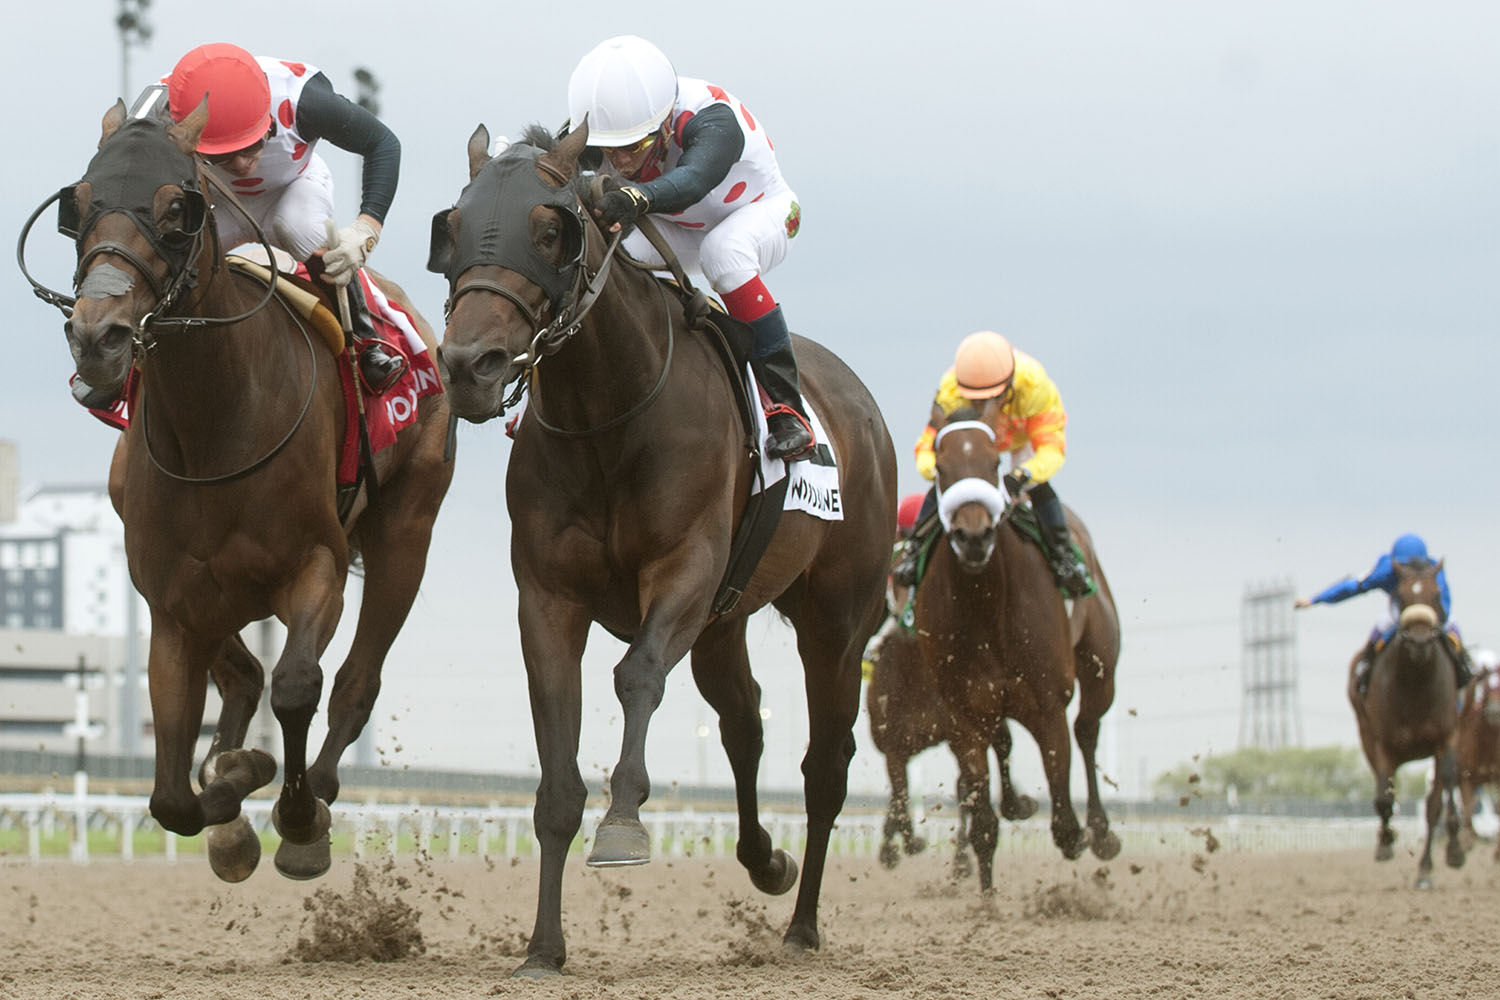 A 1-2 finish for Live Oak Plantation in the $150,000 Trillium Stakes (Grade 3) as Souper Escape (#2 inside) and jockey Luis Contreras nosed out Crystal Glacier and Kazushi Kimura in a photo finish on Saturday, June 26 at Woodbine Racetrack. (Michael Burns Photo)